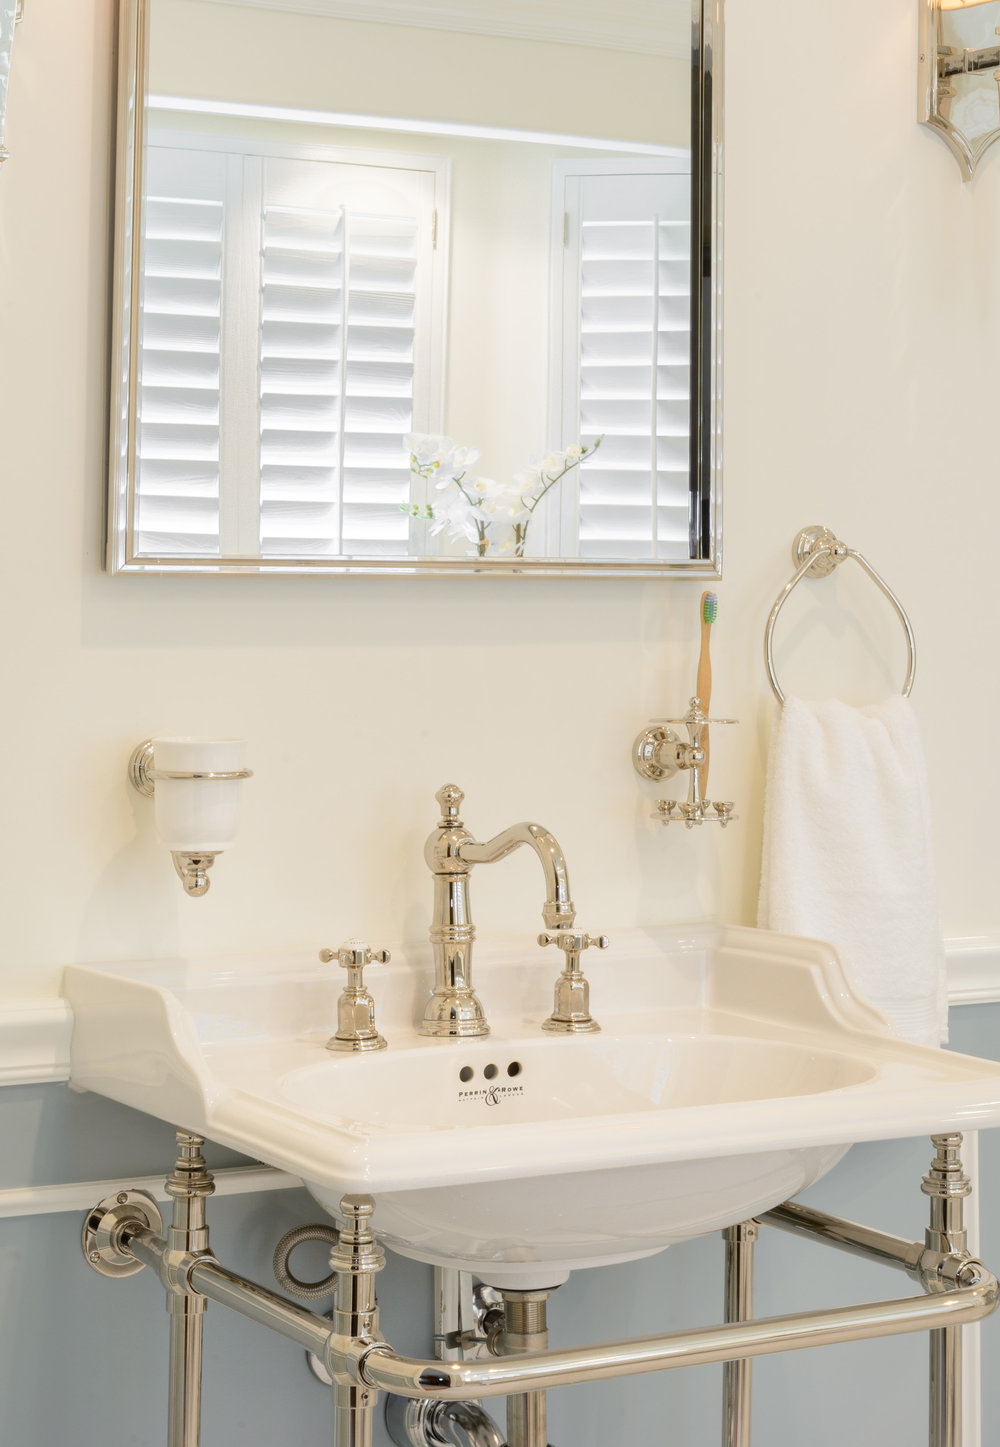 Victorian sophistication: white console sink, traditional widespread faucet, framed mirror, and white wall with a soft grey wainscot